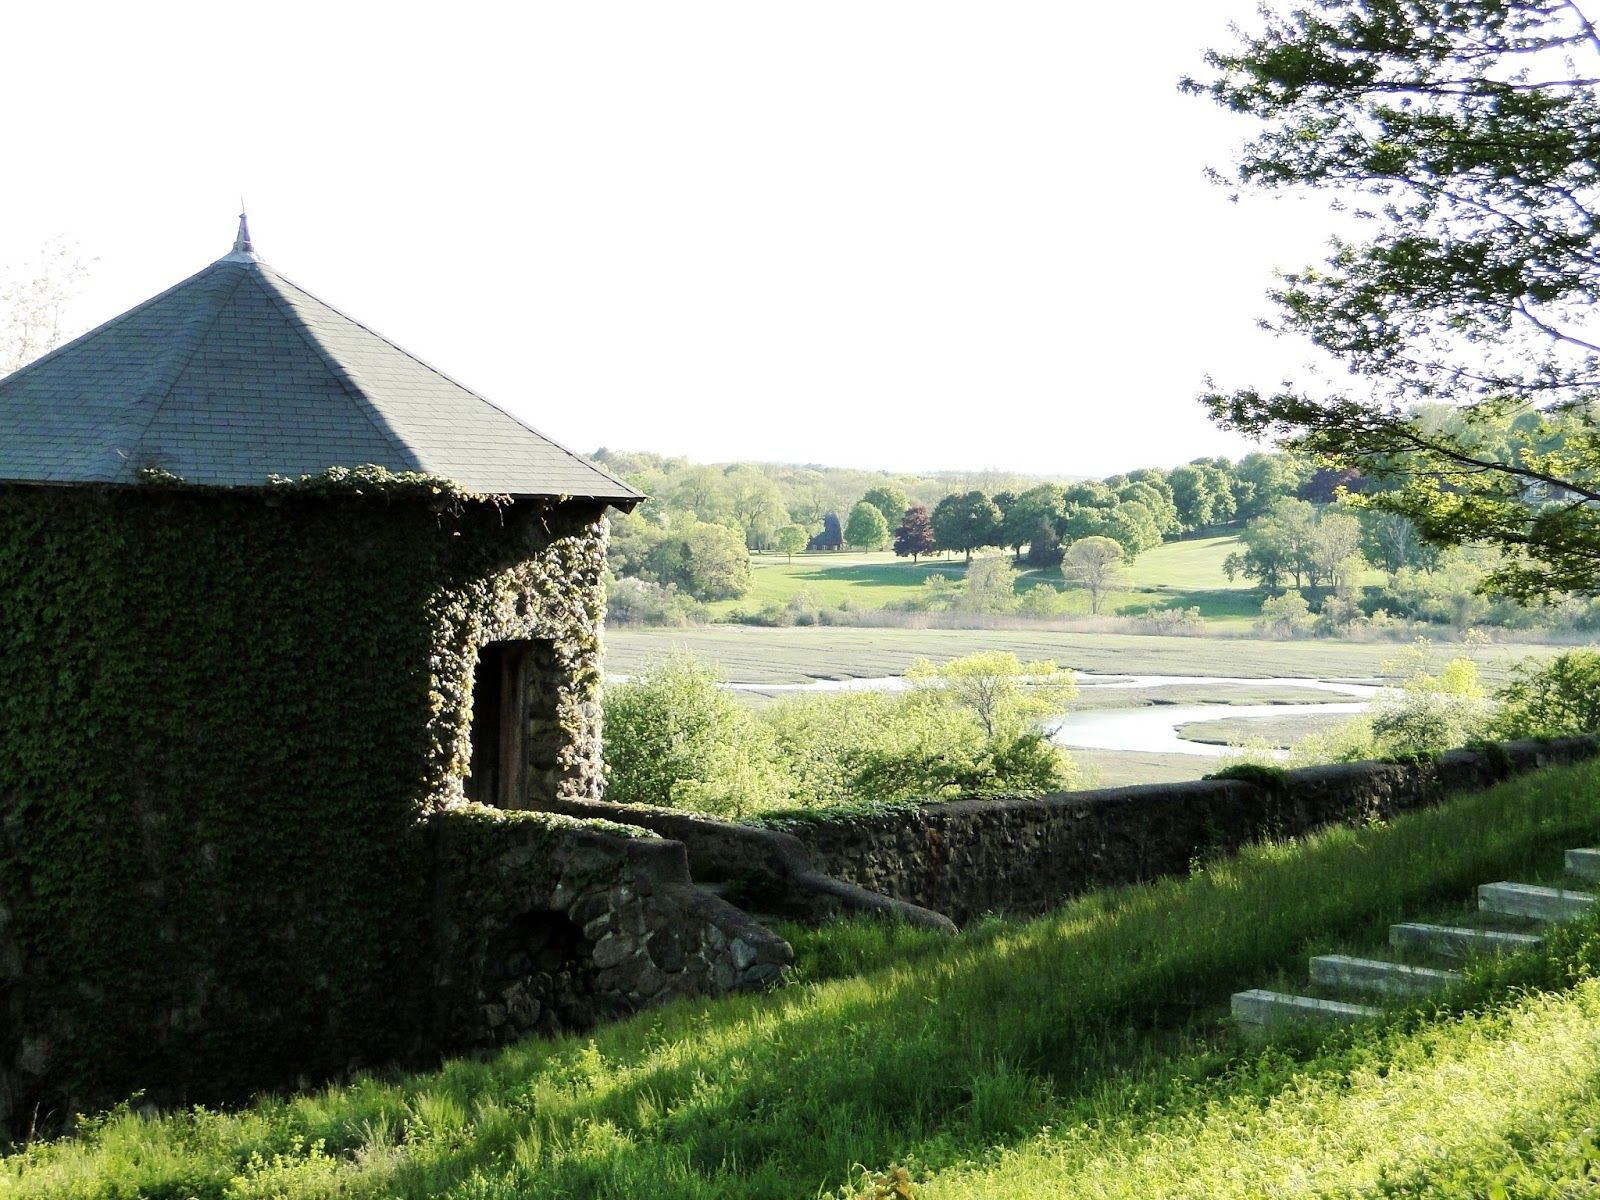 Crane Estate, Ipswich, MA - one of my favorite places.